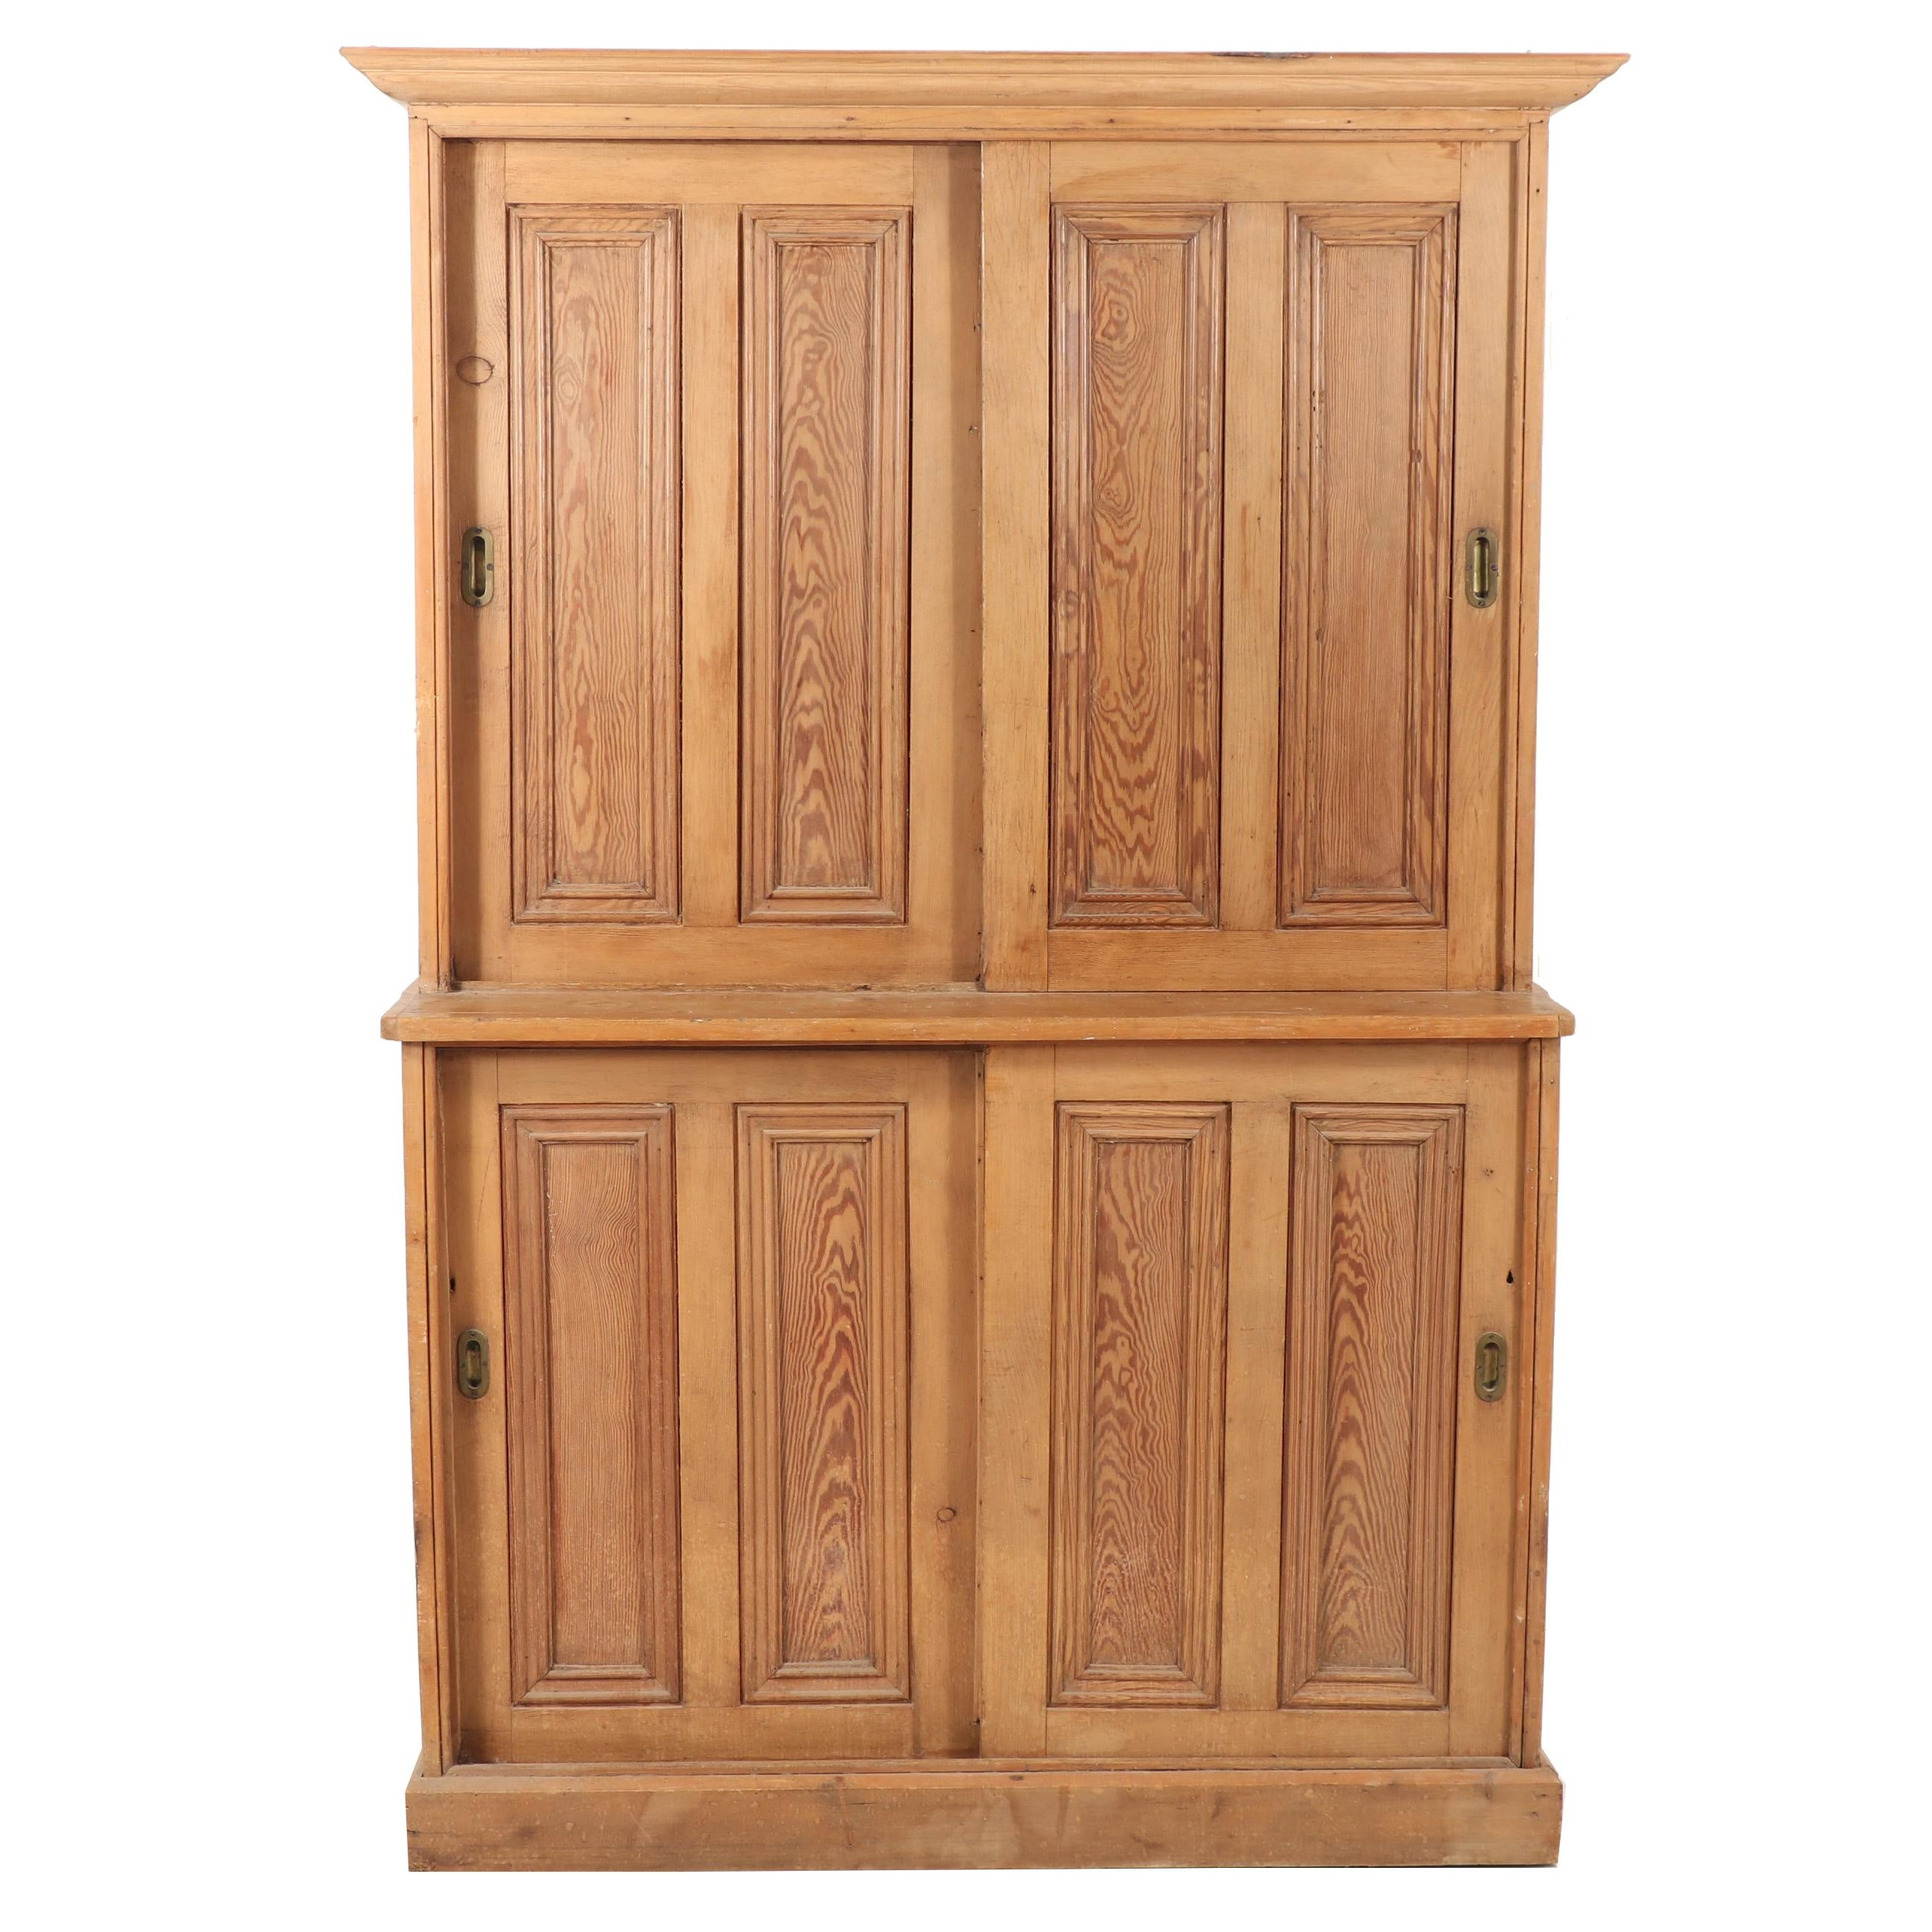 Continental Pitch Pine Sliding Door Cabinet, Late 19th Century